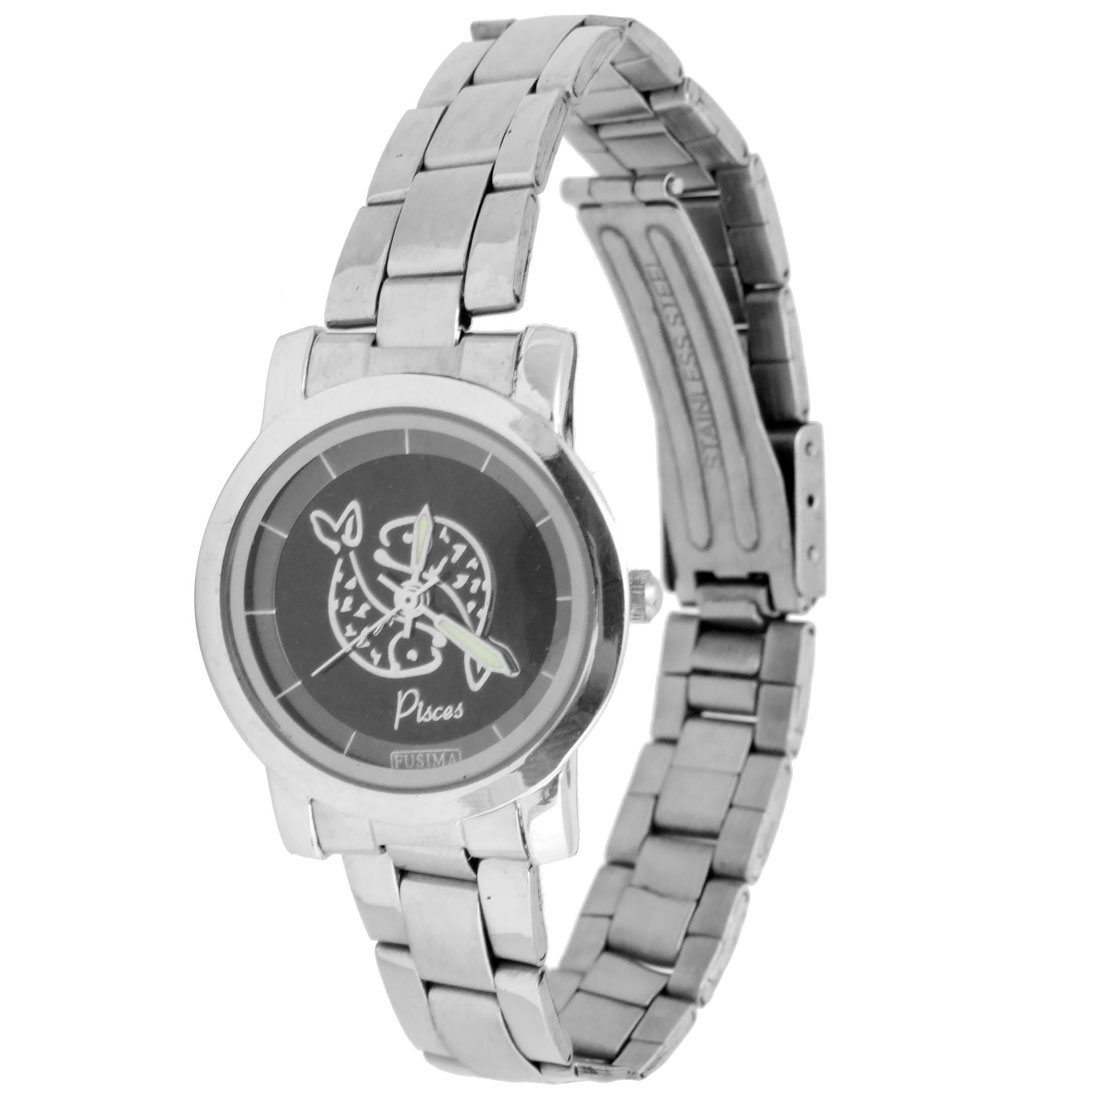 Attractive Stainless Steel Band with Black Dial Quartz Wristwatch